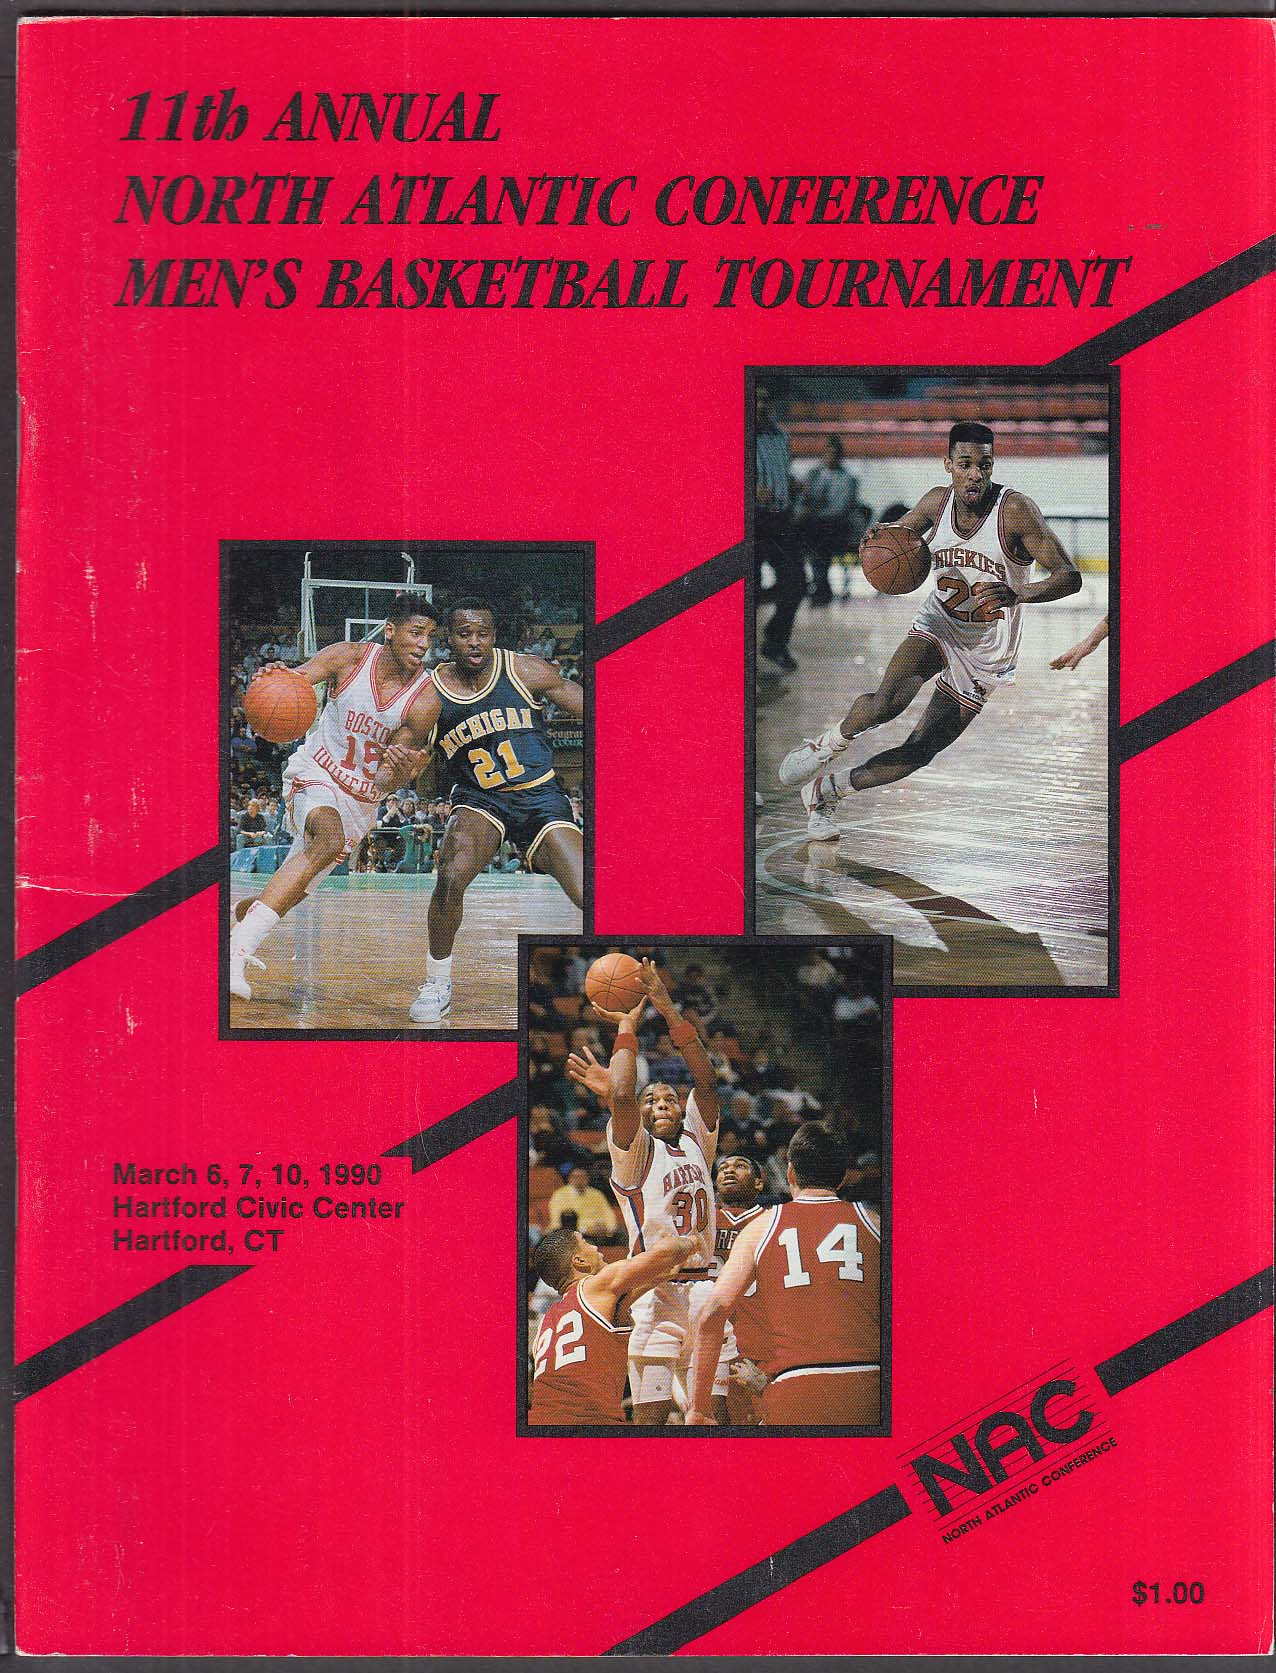 11th Annual North Atlantic Conference Men's Basketball Tournament Program 1990